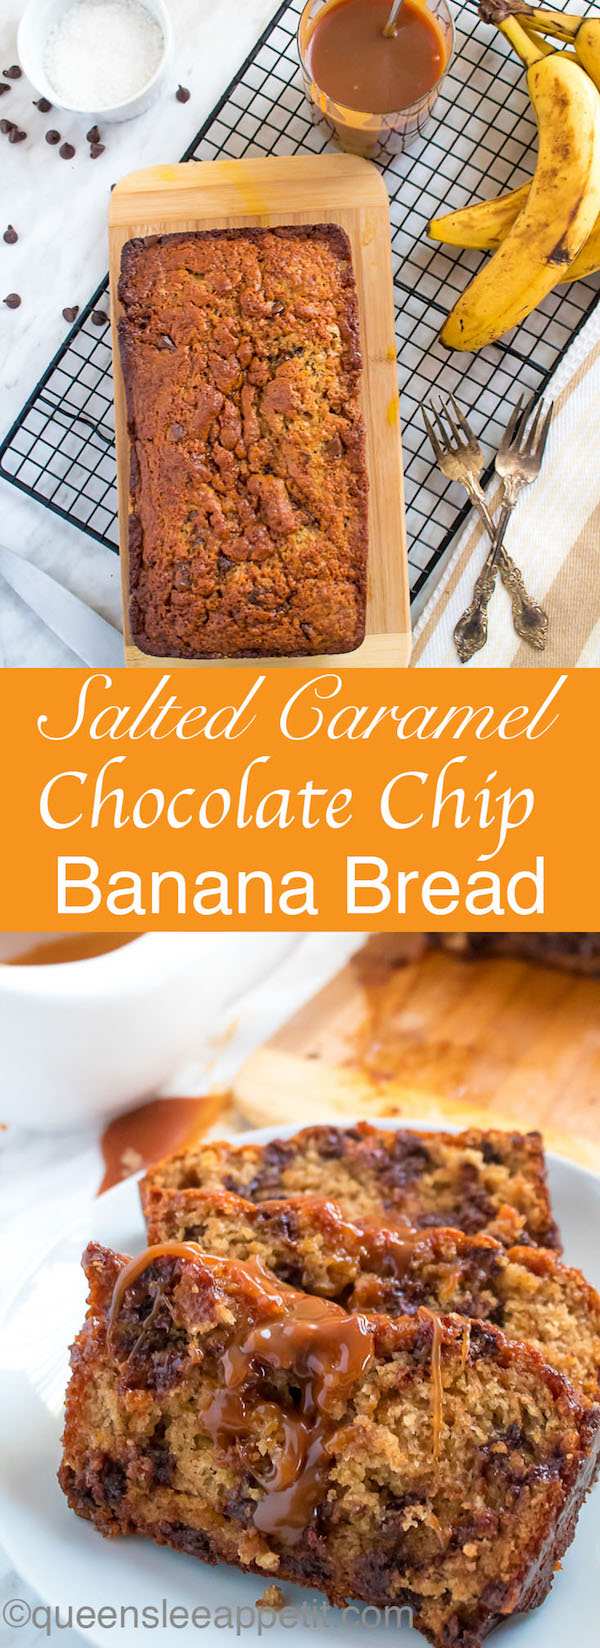 This Salted Caramel Chocolate Chip Banana Bread is soft, moist and fluffy. Packed with chocolate chips and swirled with salted caramel sauce, this banana bread will surely be your new favourite!